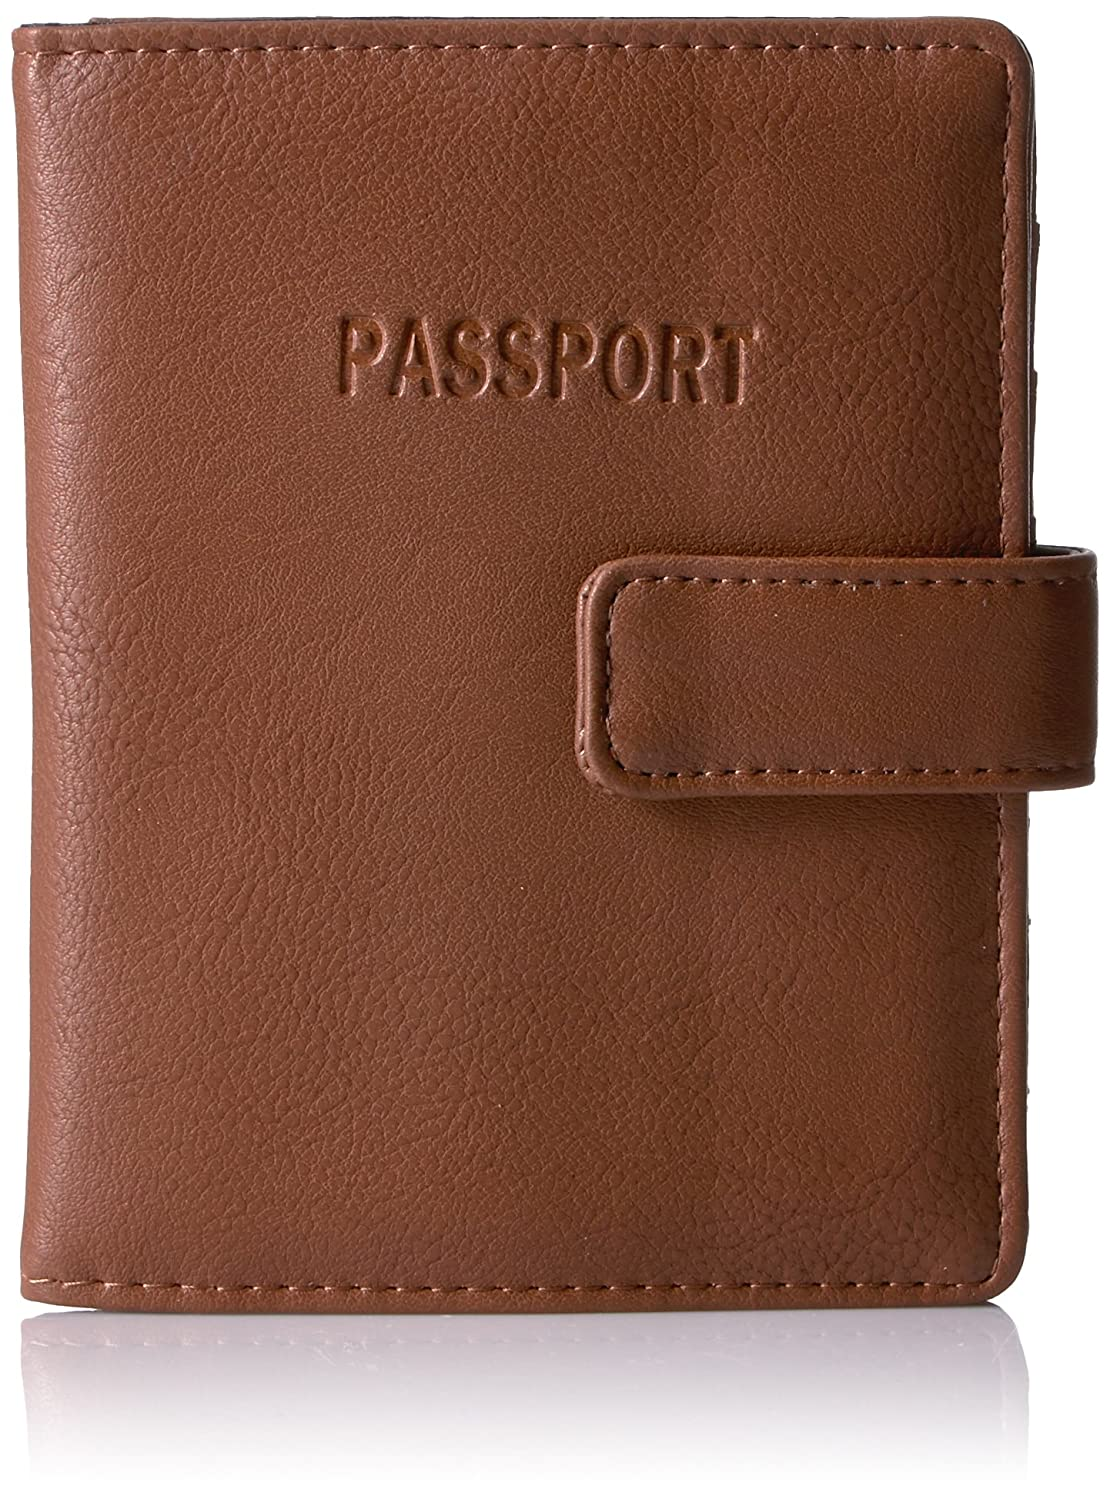 Kenneth Cole Reaction Core Deluxe Passport Wallet With Rfid Blocking Wallet Earth One Size 172990